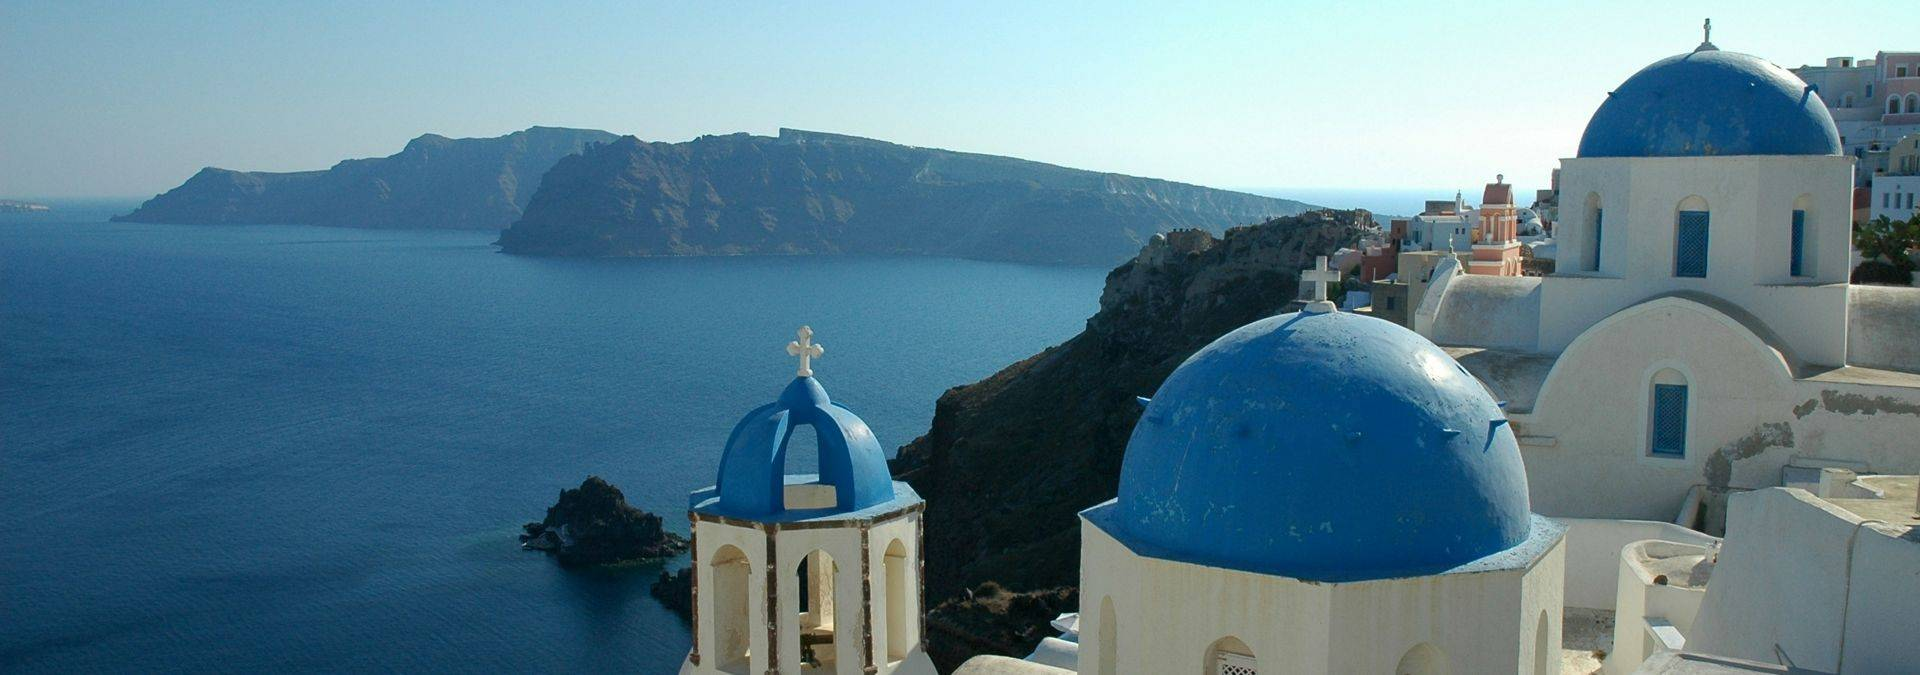 Santorini, Greece 2